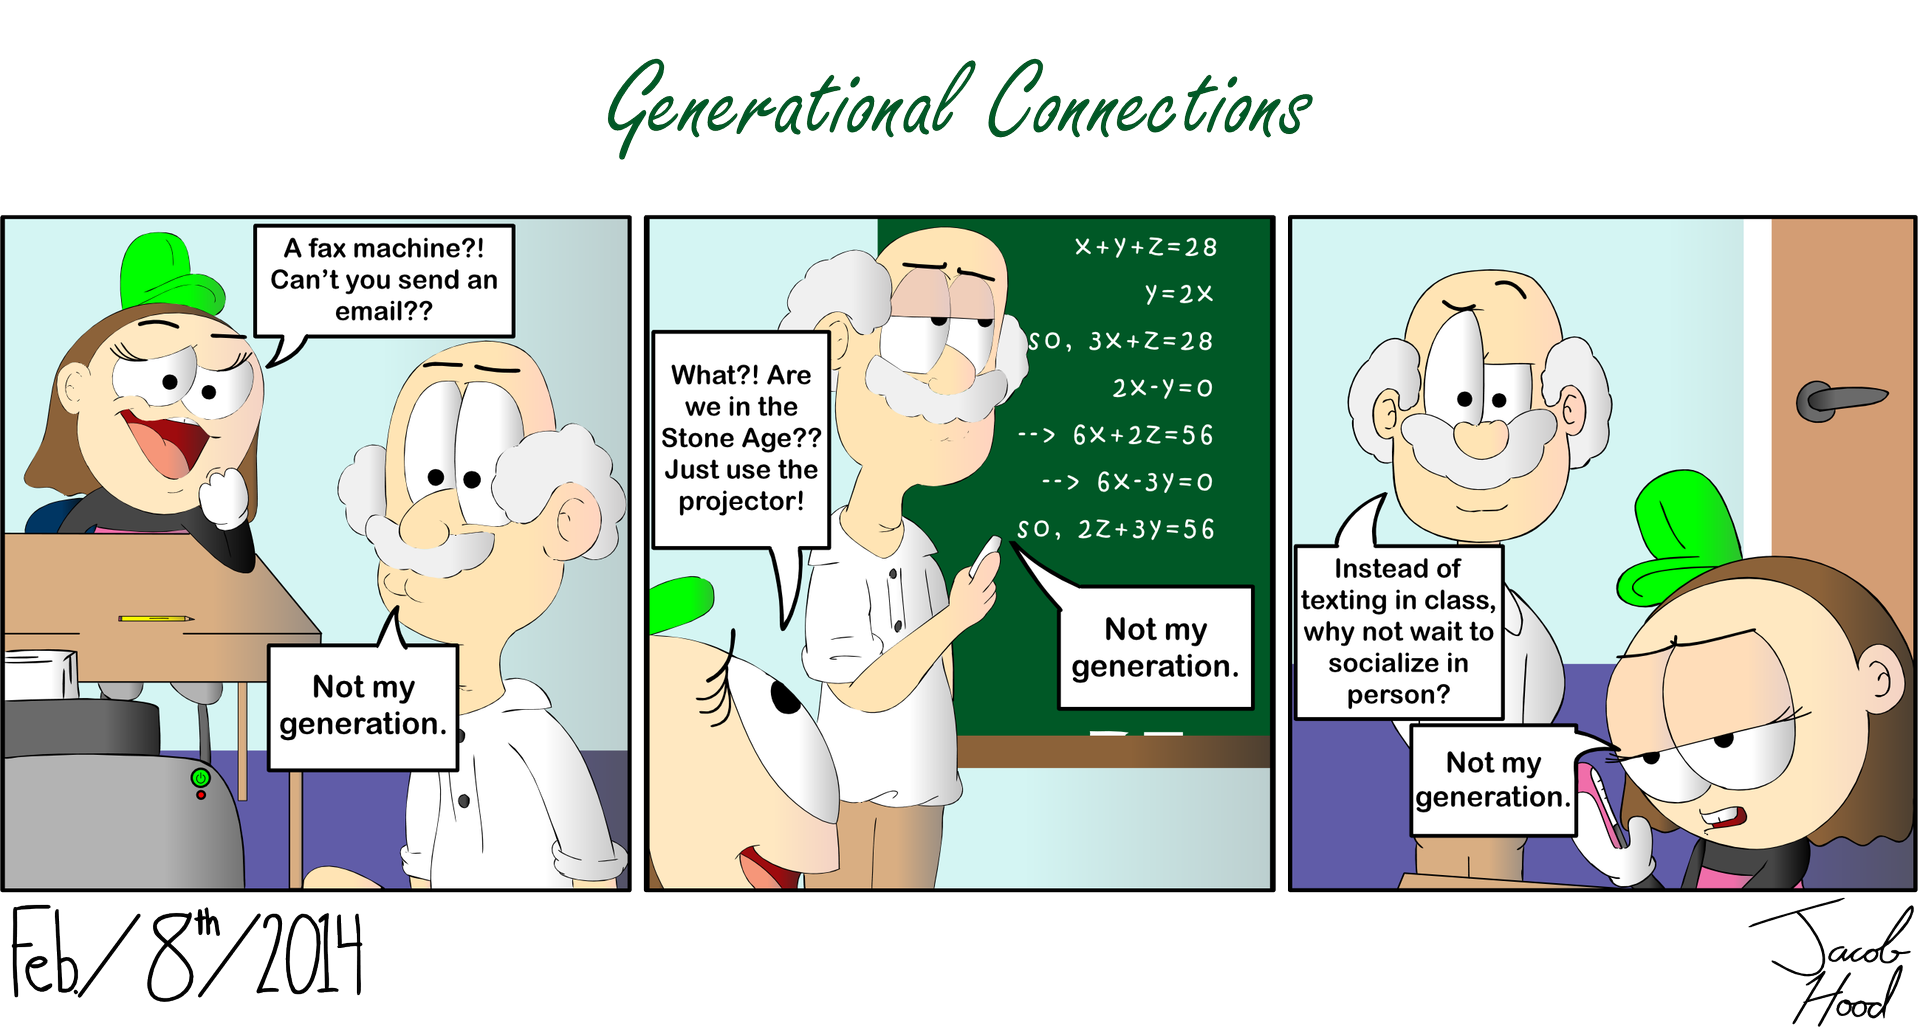 Generational Connections